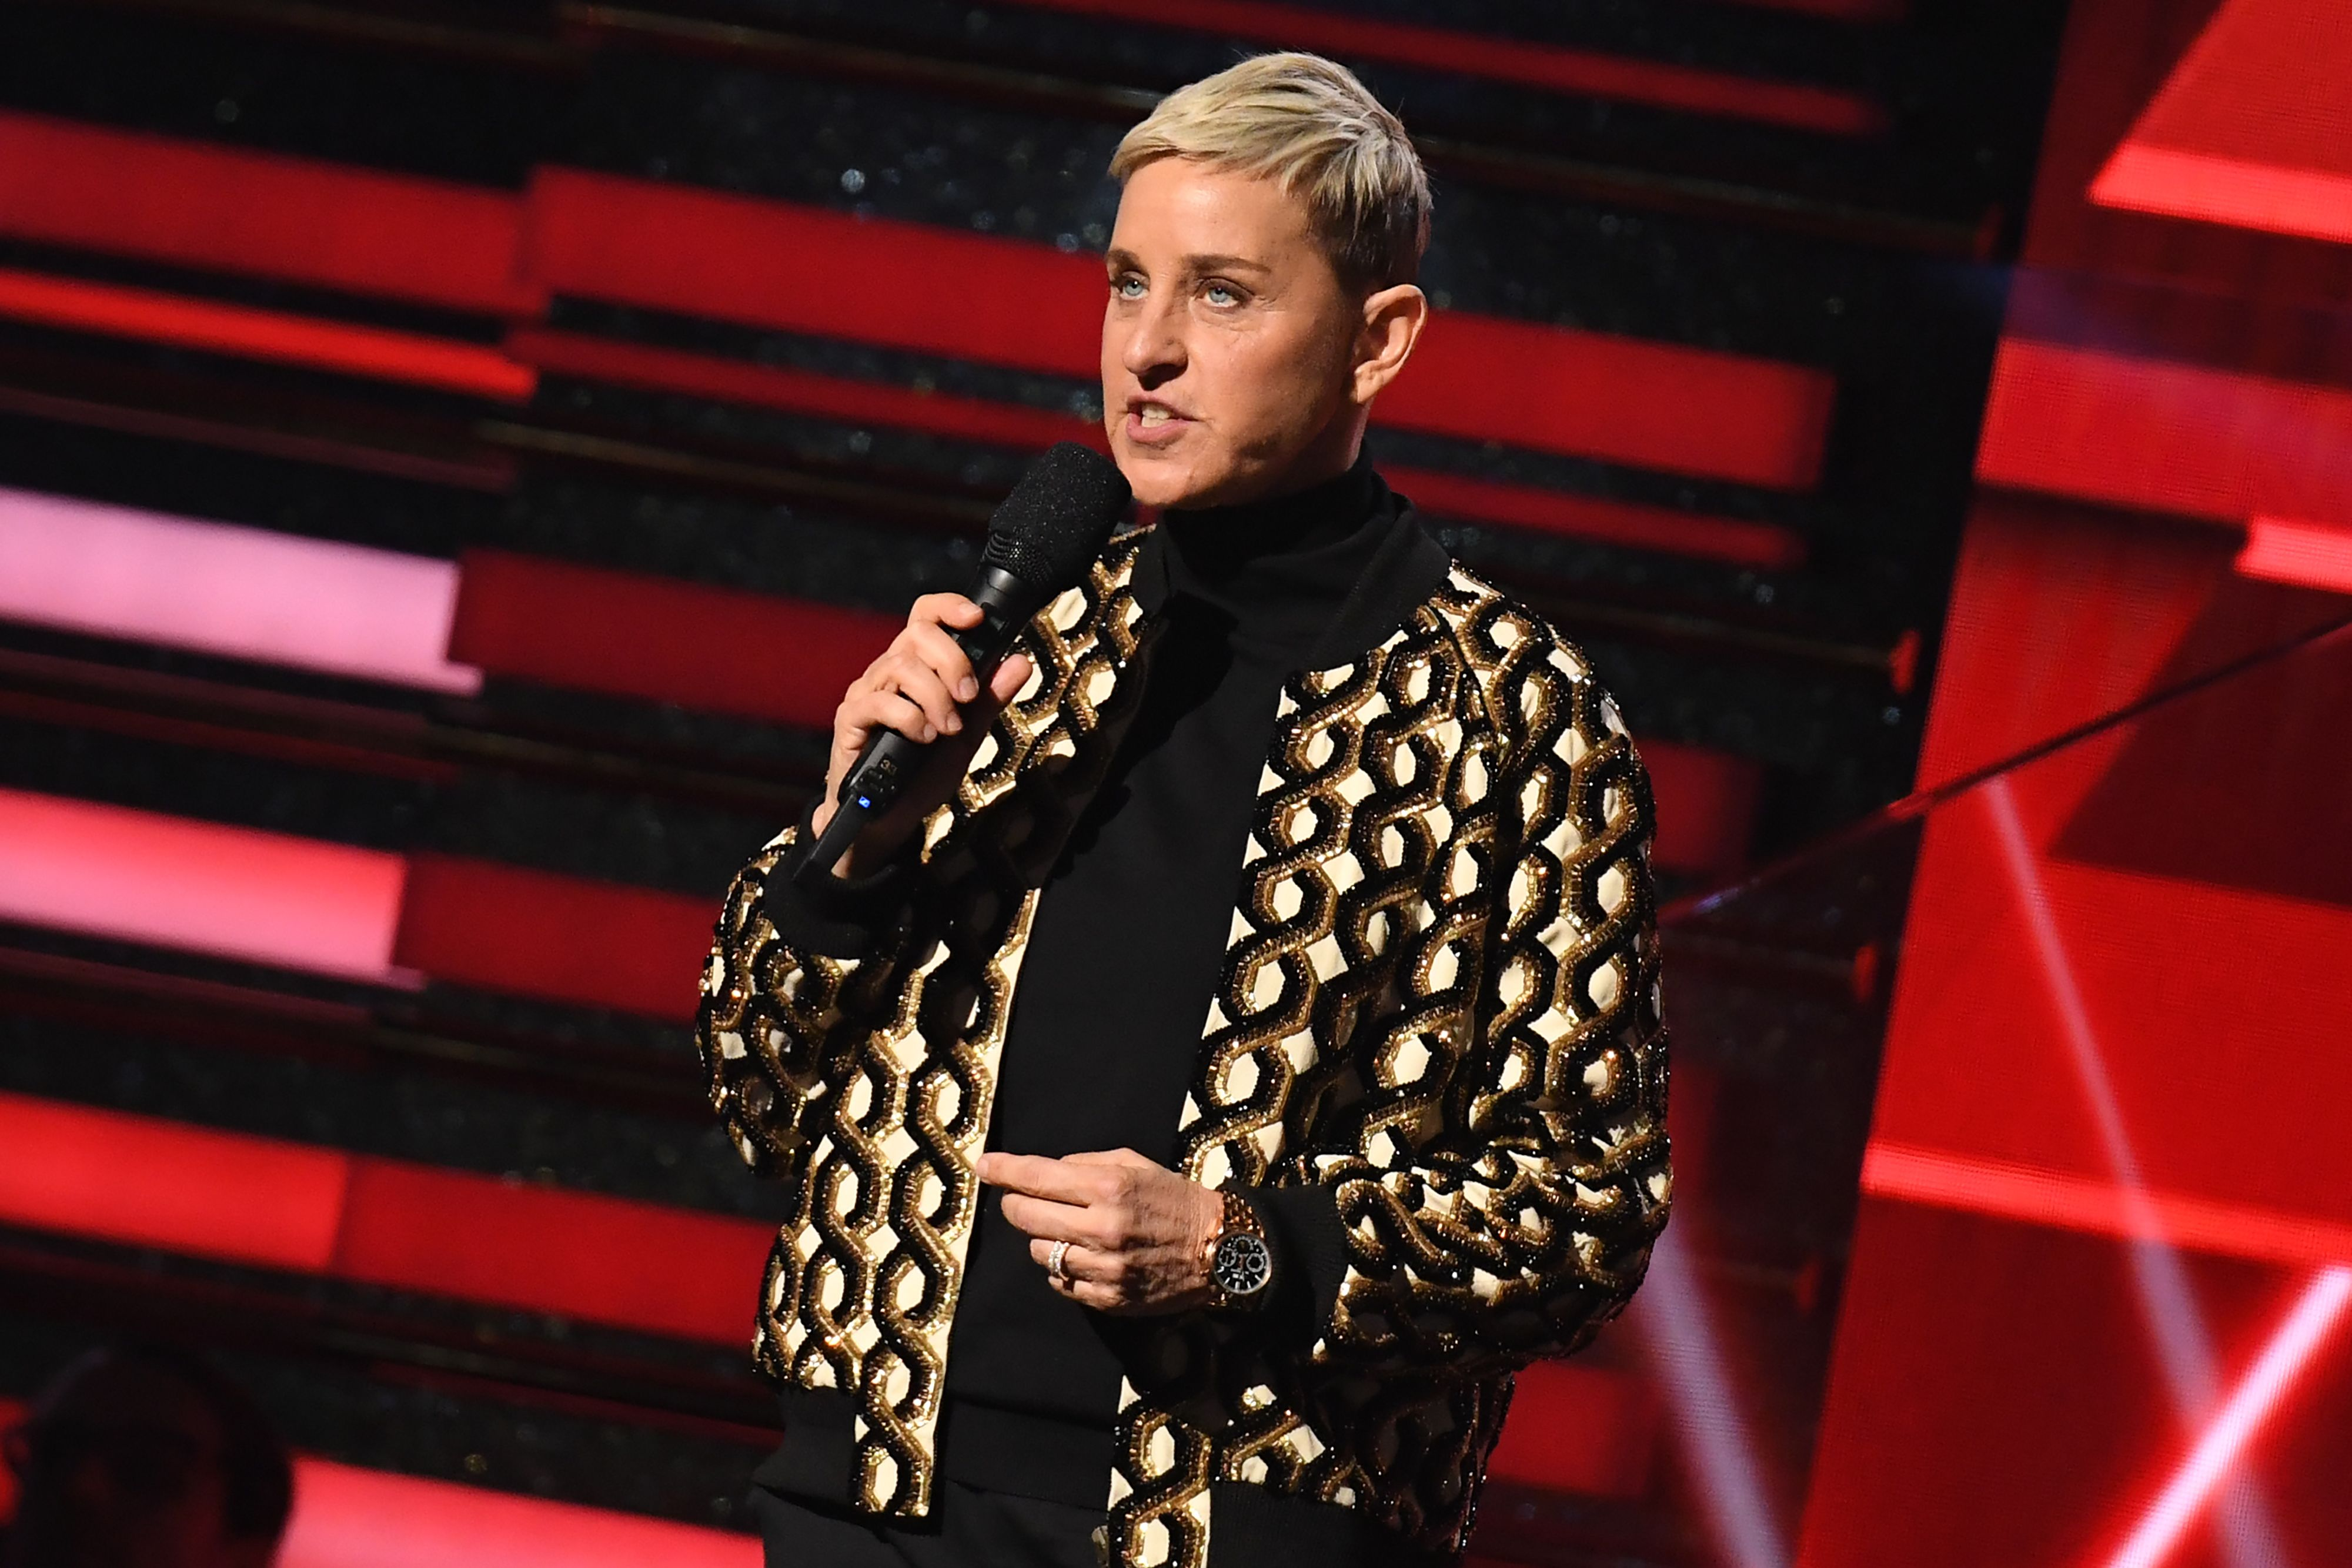 A source previously told The Sun the Ellen Show was 'never a kind place'